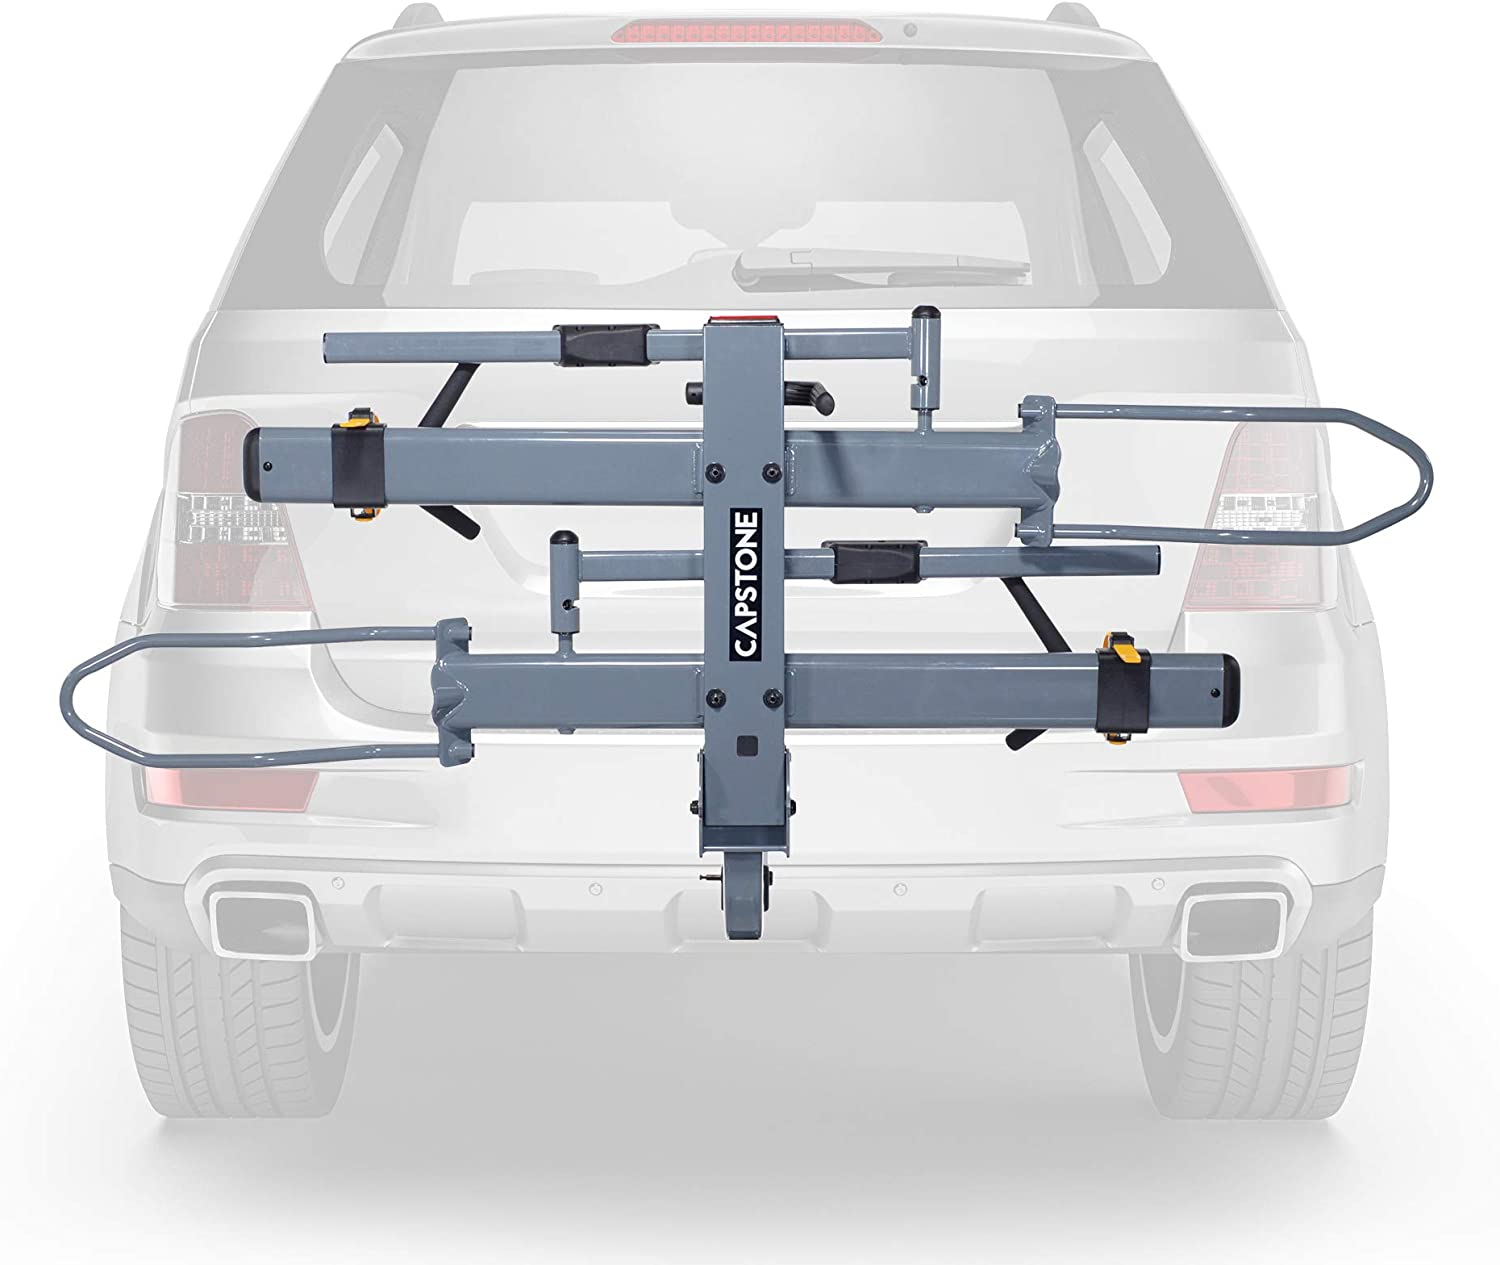 Capstone Car Racks and Bicycle Accessories Elite 2.0 Hitch Rack for 2 Bikes